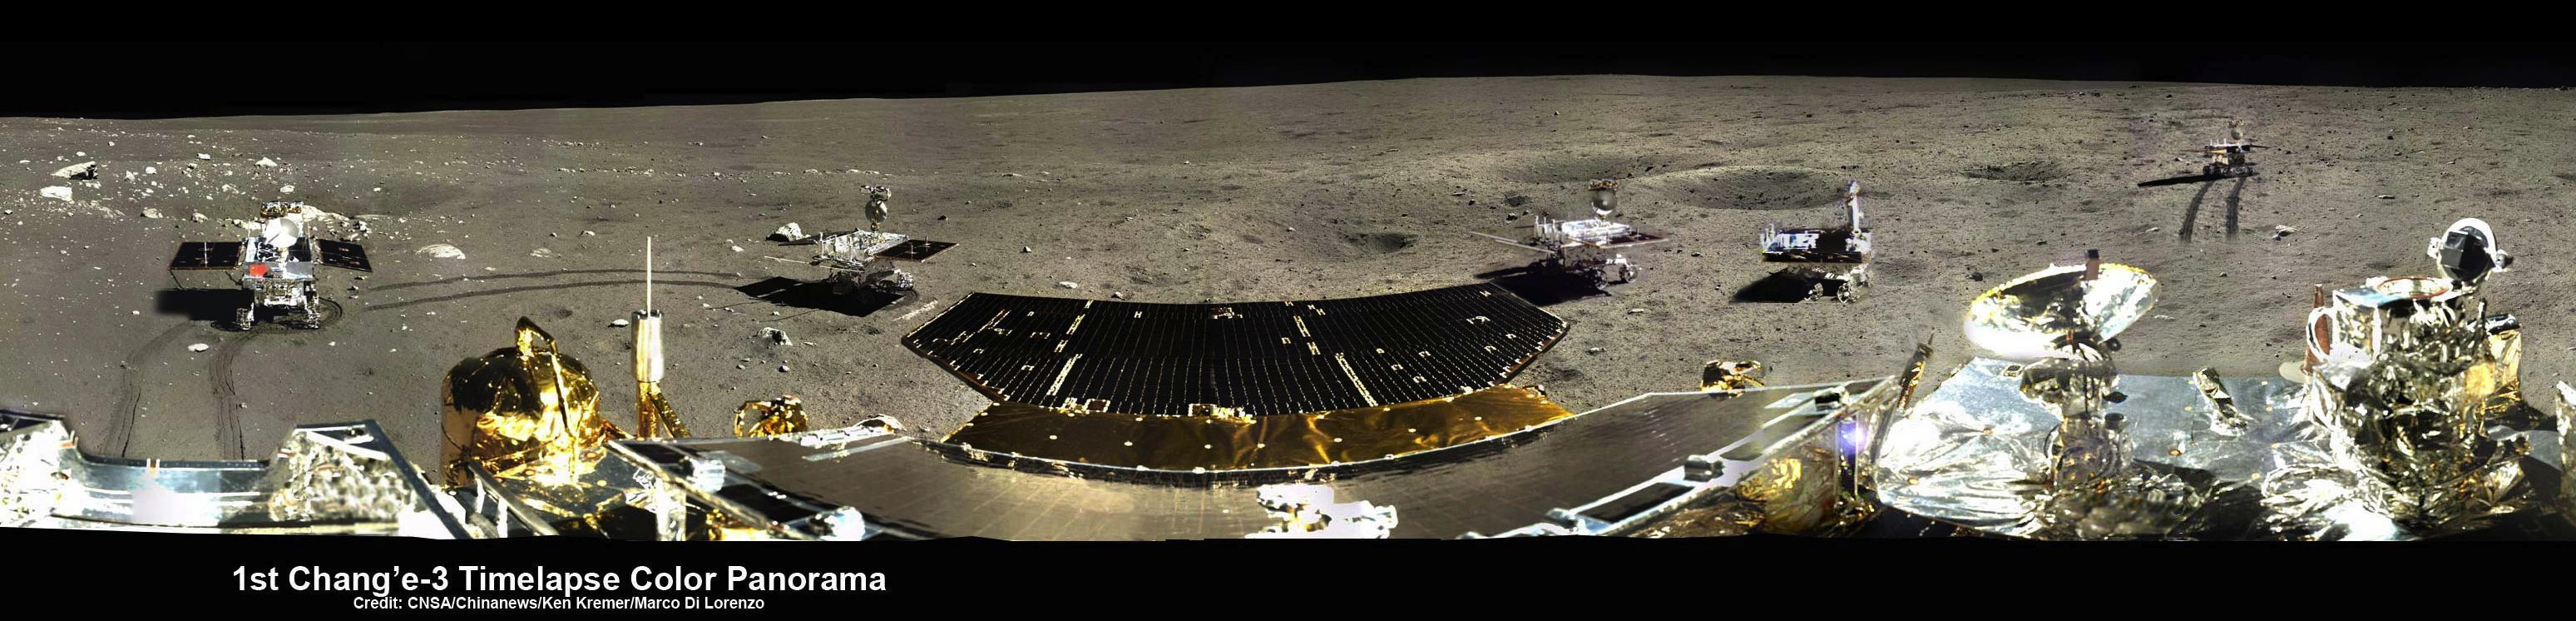 China's 'Jade Rabbit' Moon Rover Stars in Stunning Lunar Panorama (Photos)